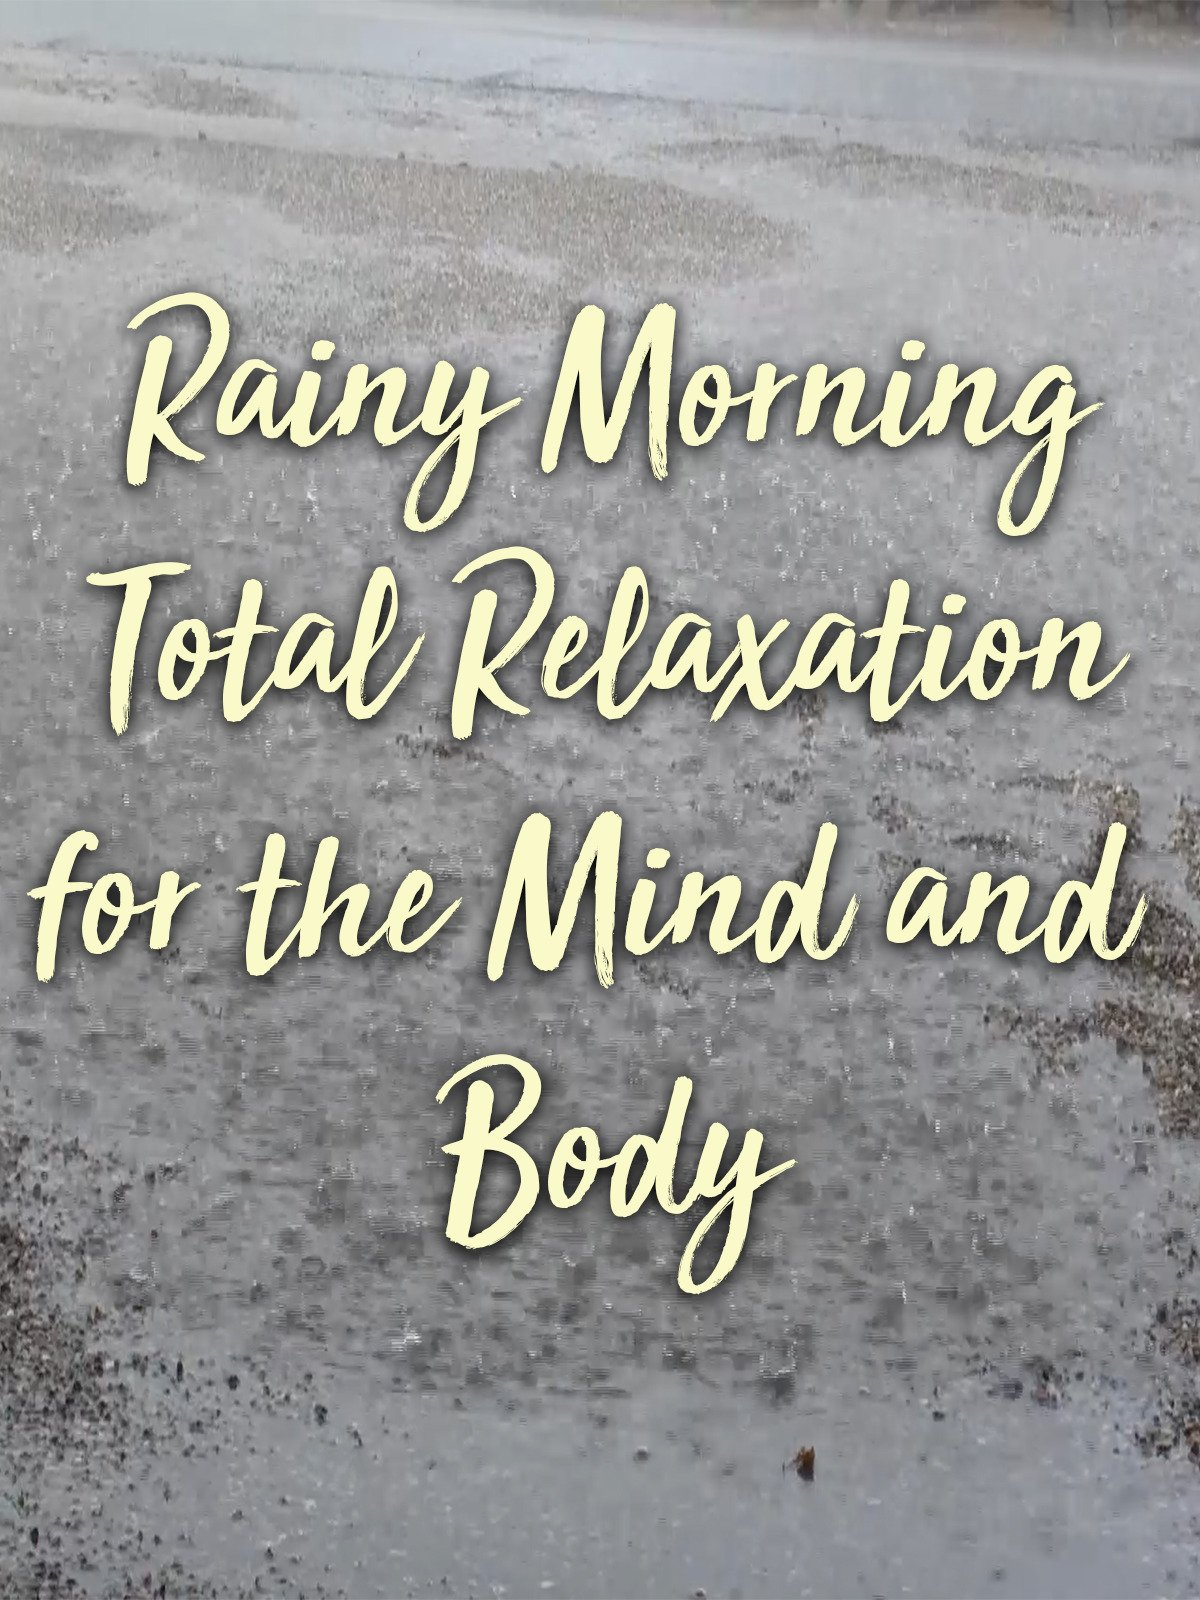 Rainy Morning Total Relaxation for the Mind and Body